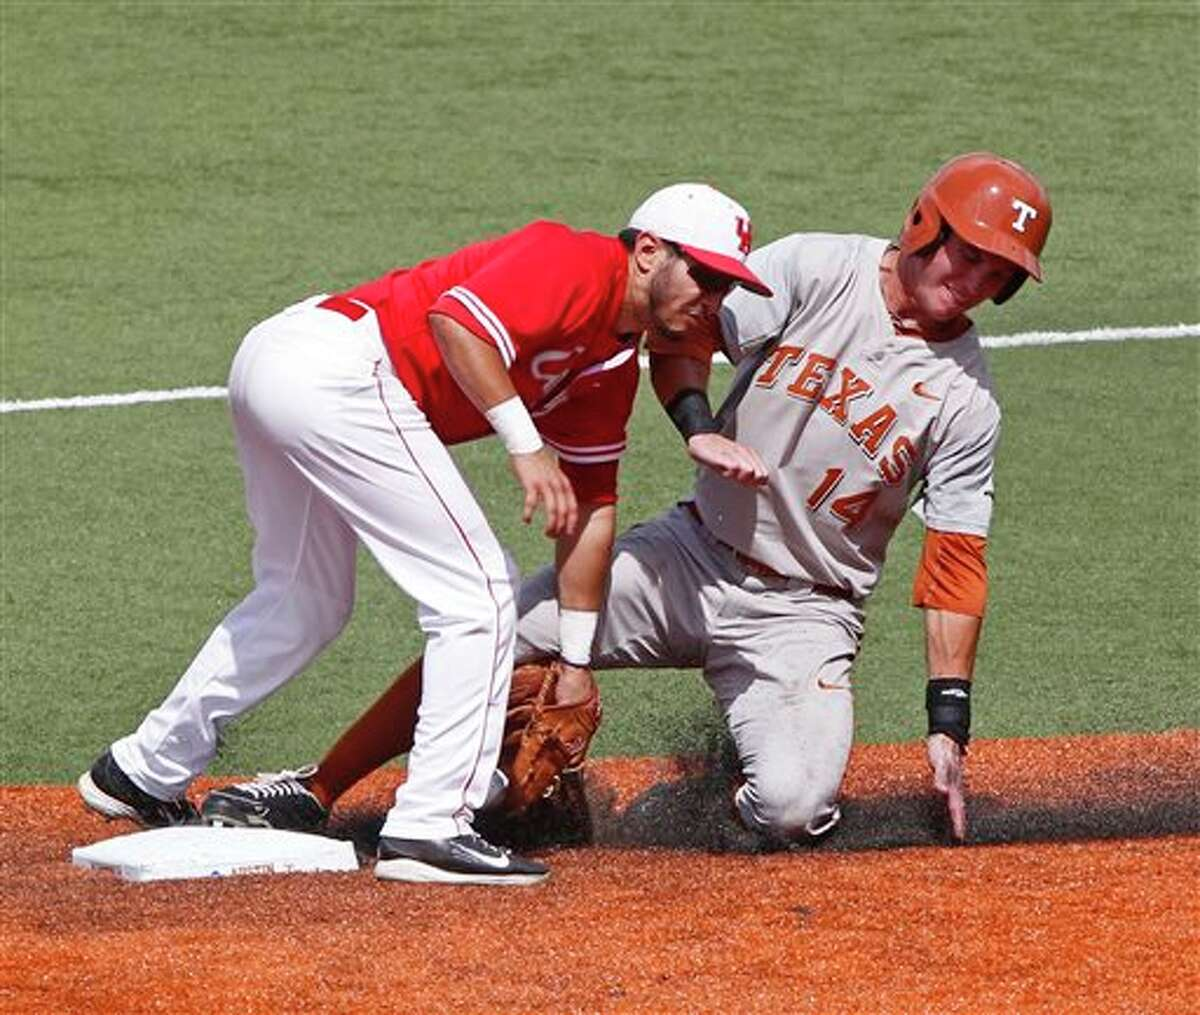 Texas' Ben Johnson (14) steals second against Houston's Josh Vidales (8) in the fifth inning of an NCAA college baseball tournament super regional game in Austin, Texas, Friday, June 6, 2014. (AP Photo/Michael Thomas)